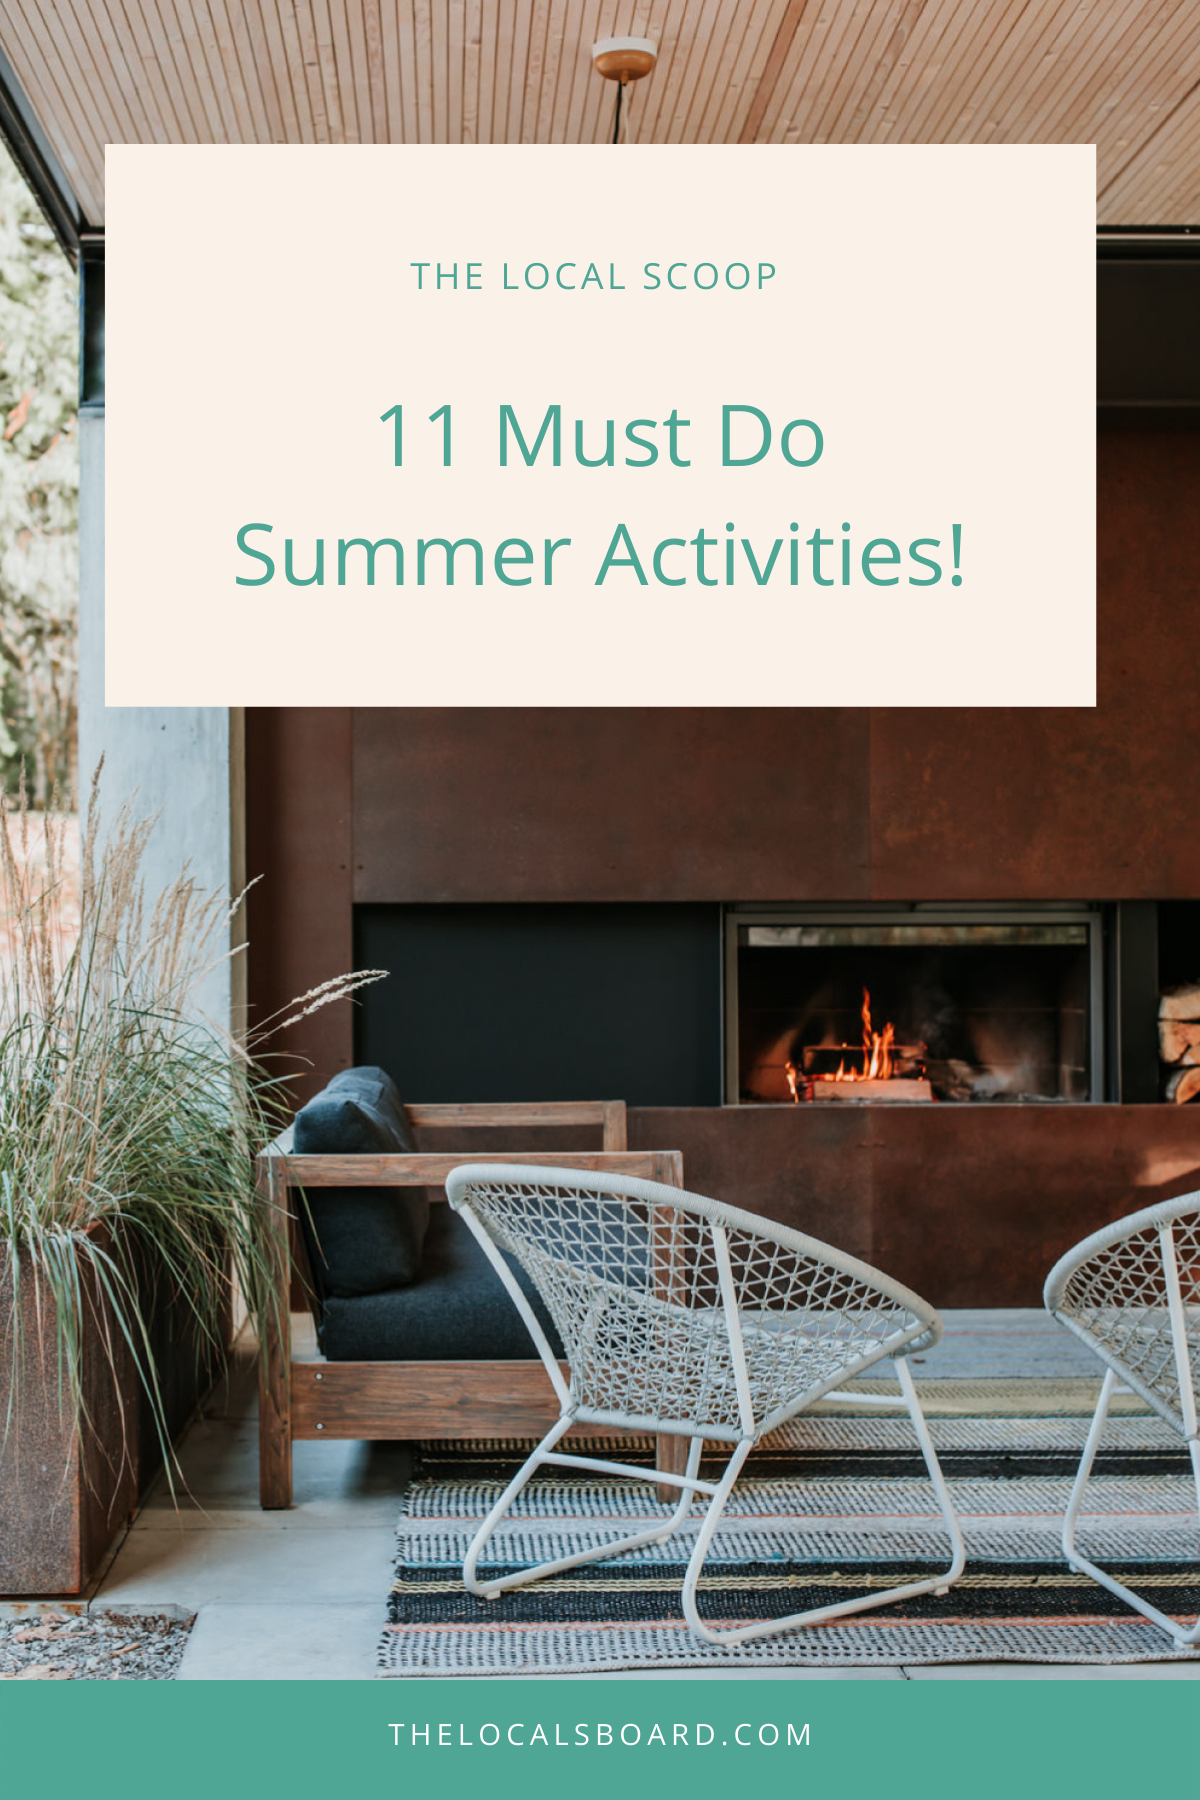 11 Must Do Summer Activities in Squamish